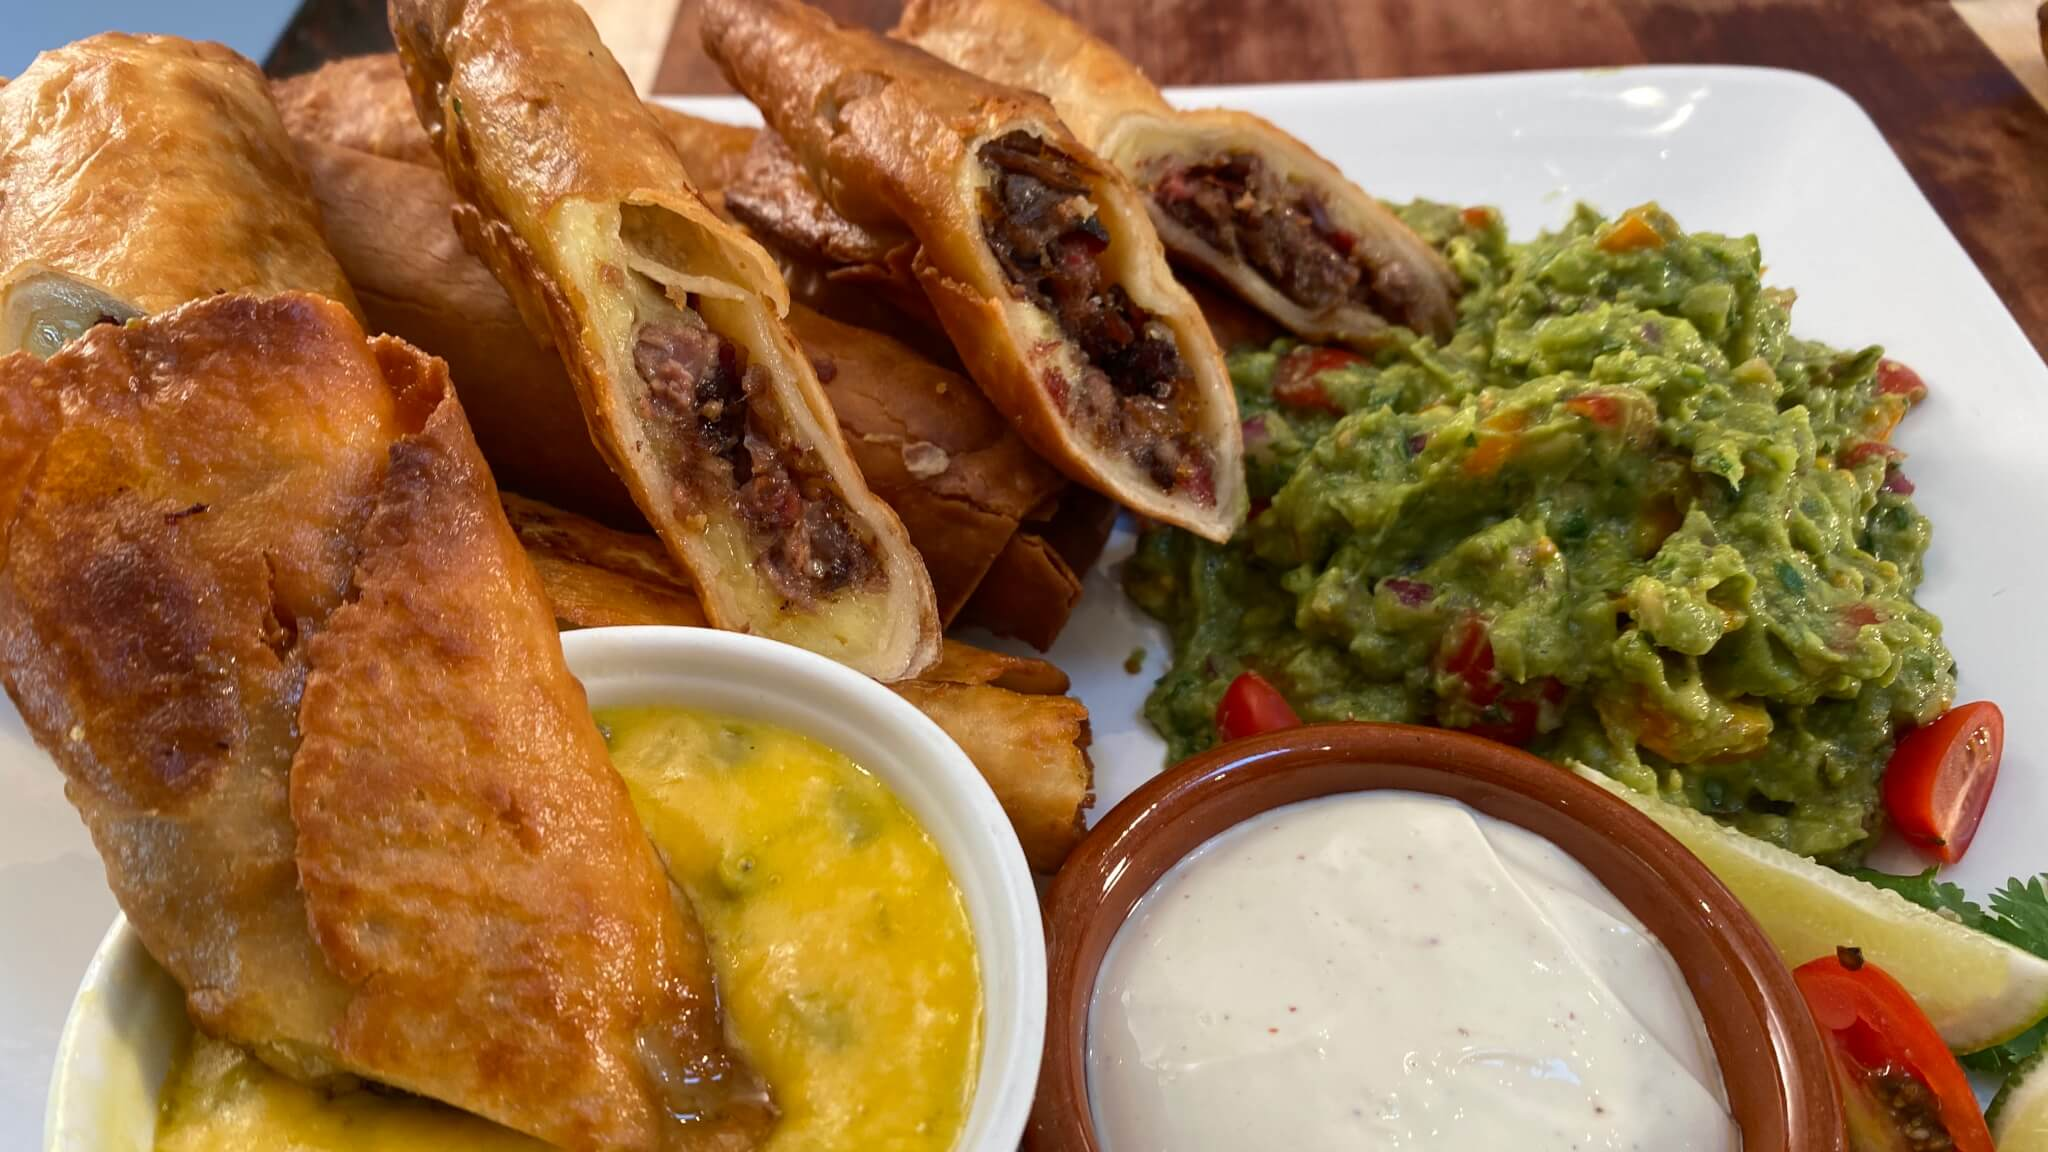 Smoked Brisket Taquitos with Fresh Guacamole and Spicy Cheese Sauce